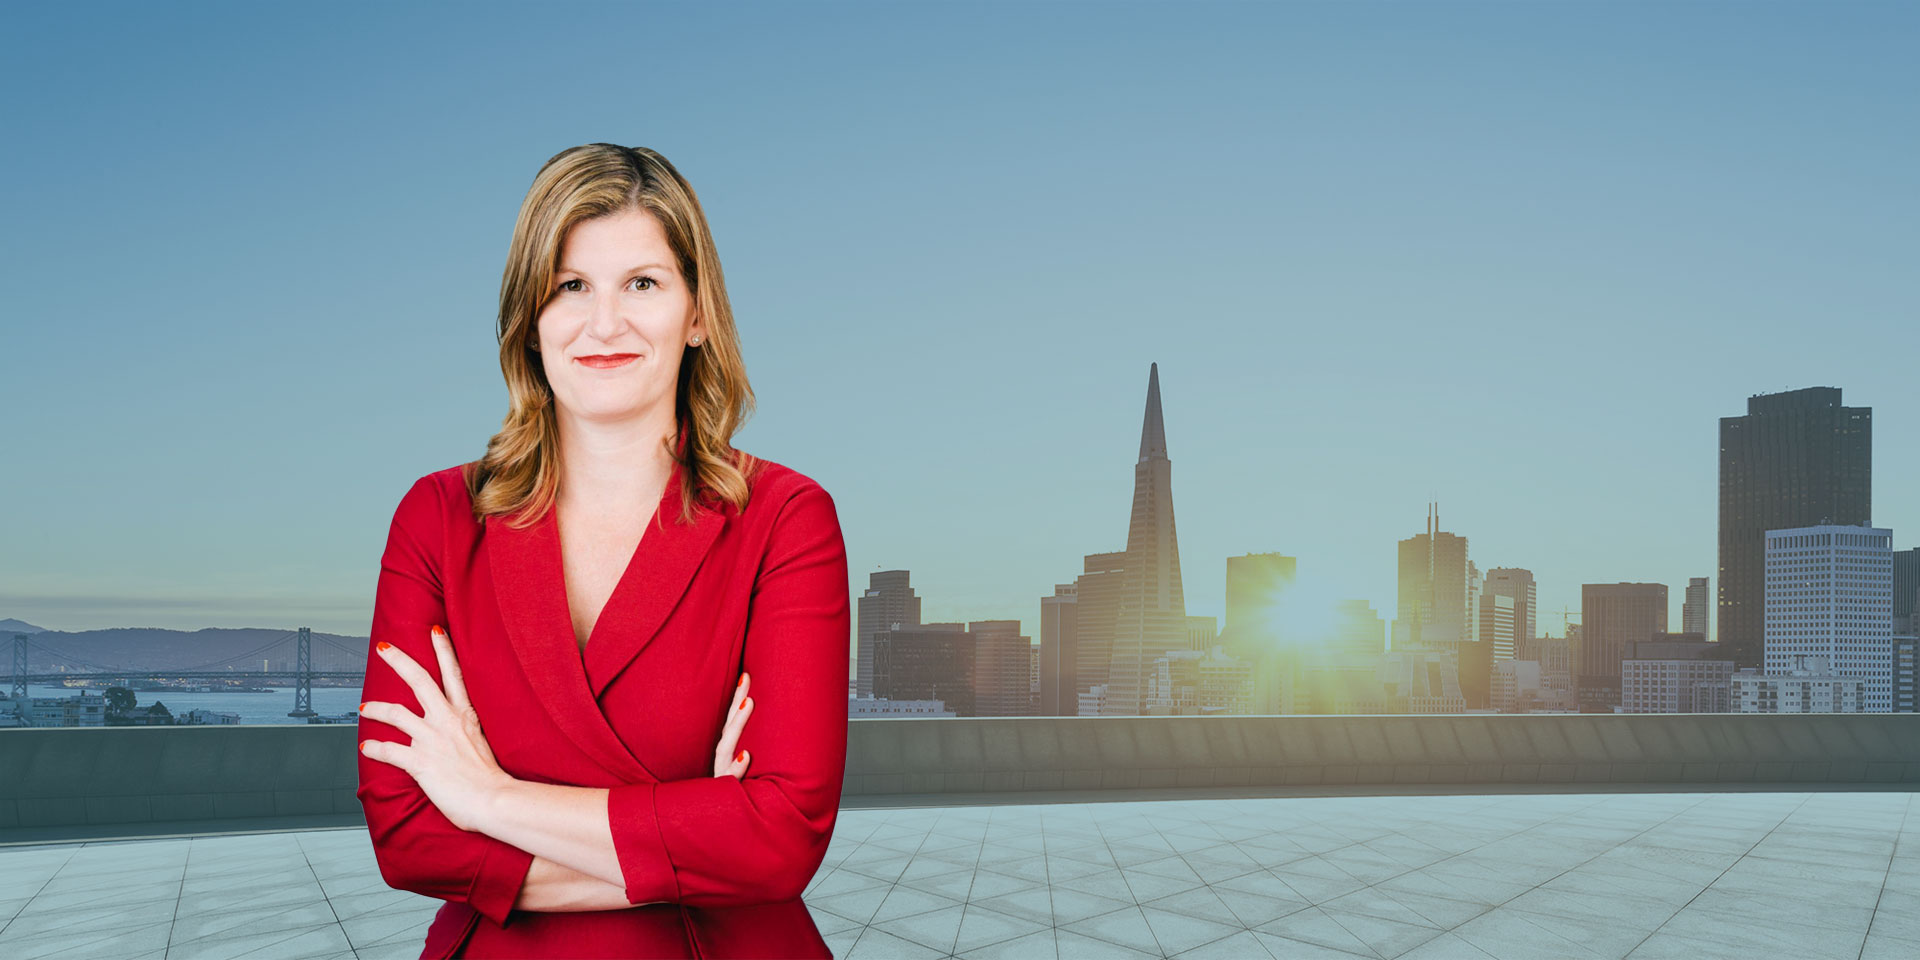 Sarah Nichols in a red suit with arms crossed standing on a roof with the San Francisco skyline in the background